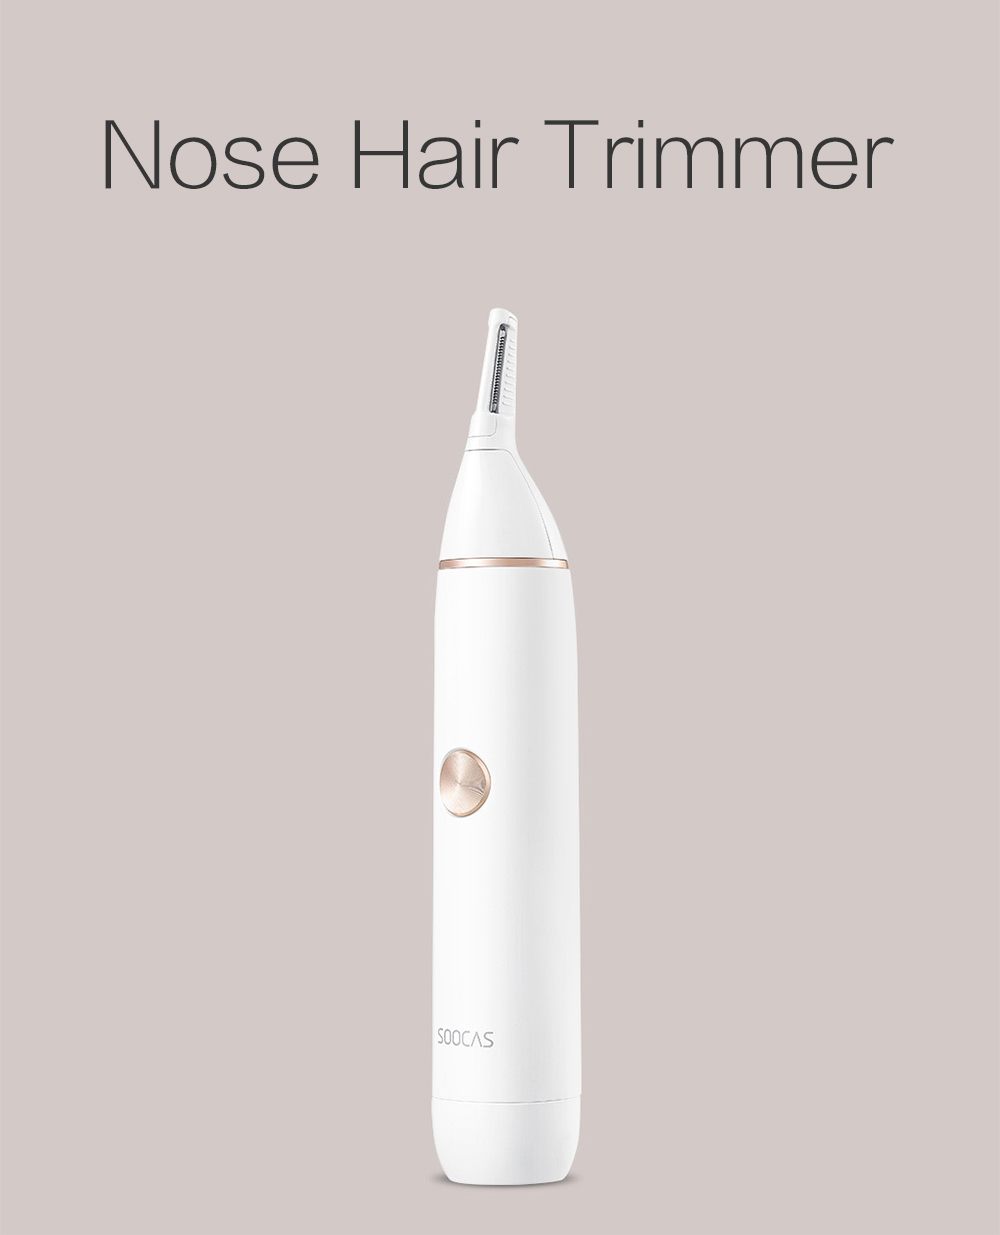 SOOCAS N1 Nose Hair Trimmer from Xiaomi Youpin- White